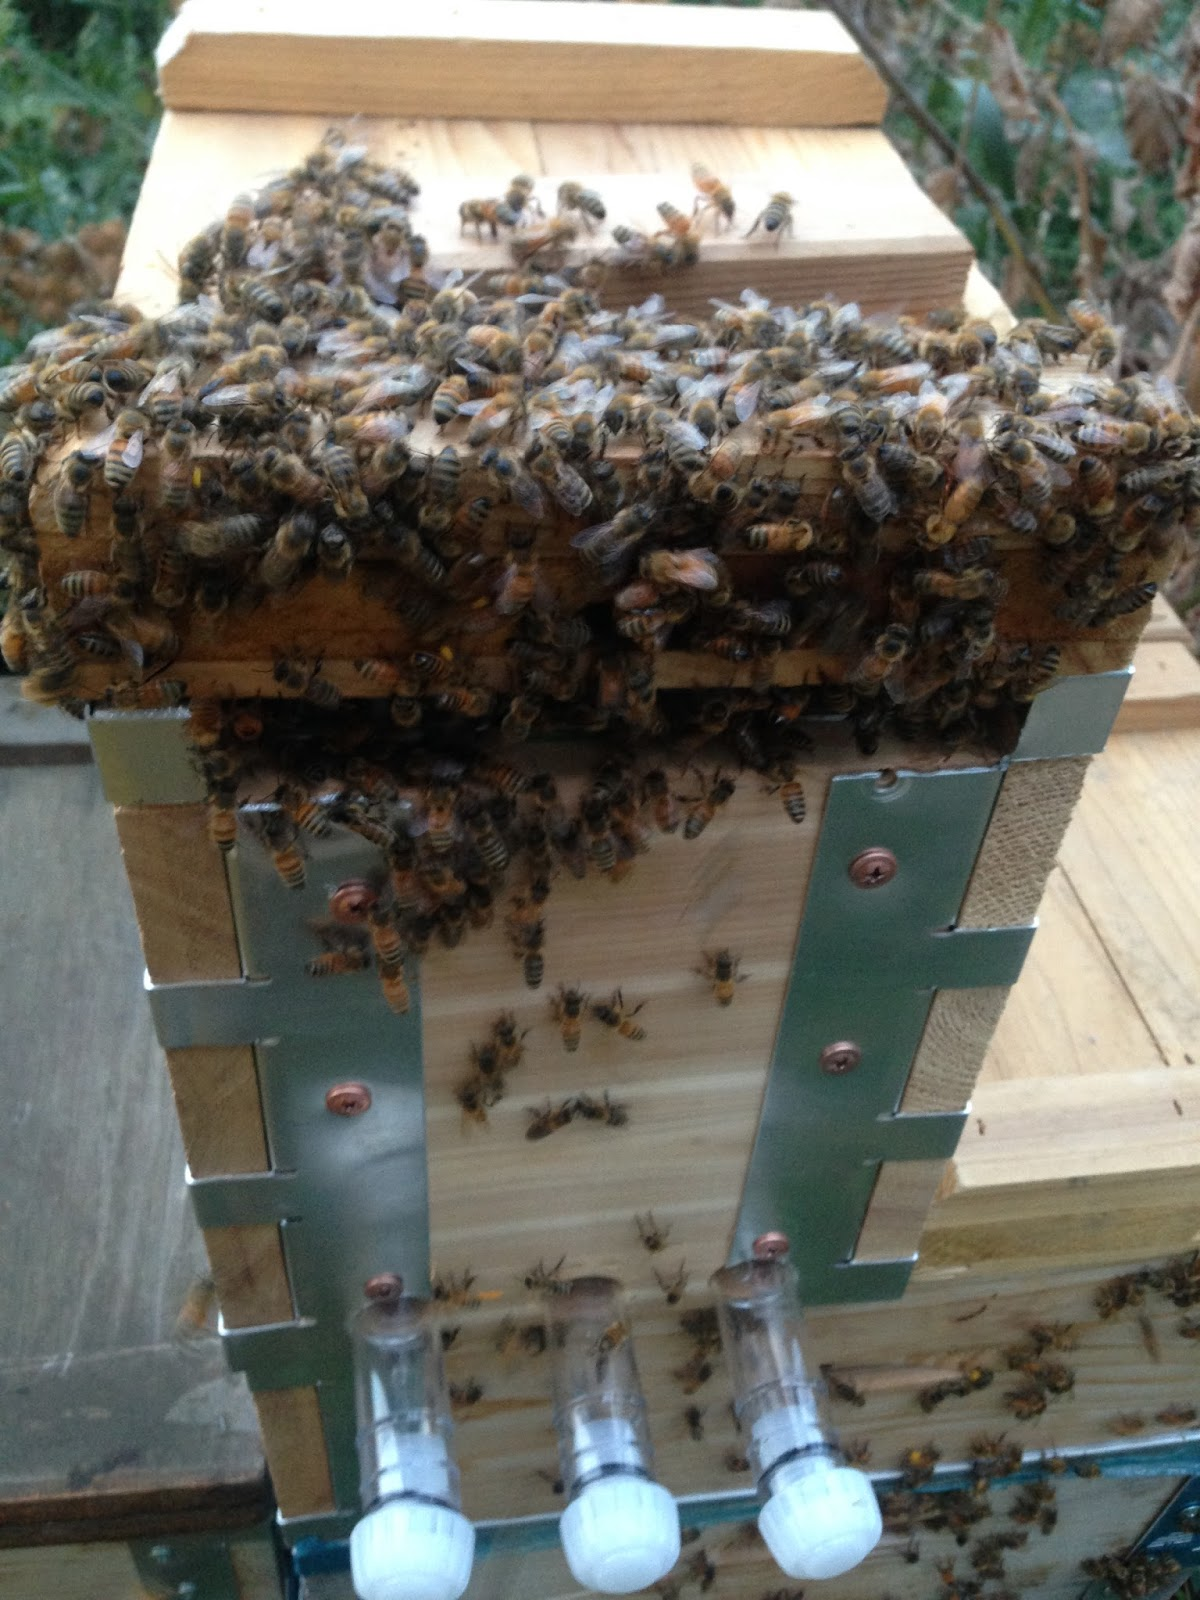 Flow Hive Review And Testing By Albert Chubak Eco Bee Box Modern Wiring Board Frames Beekeeping Honey Beehive